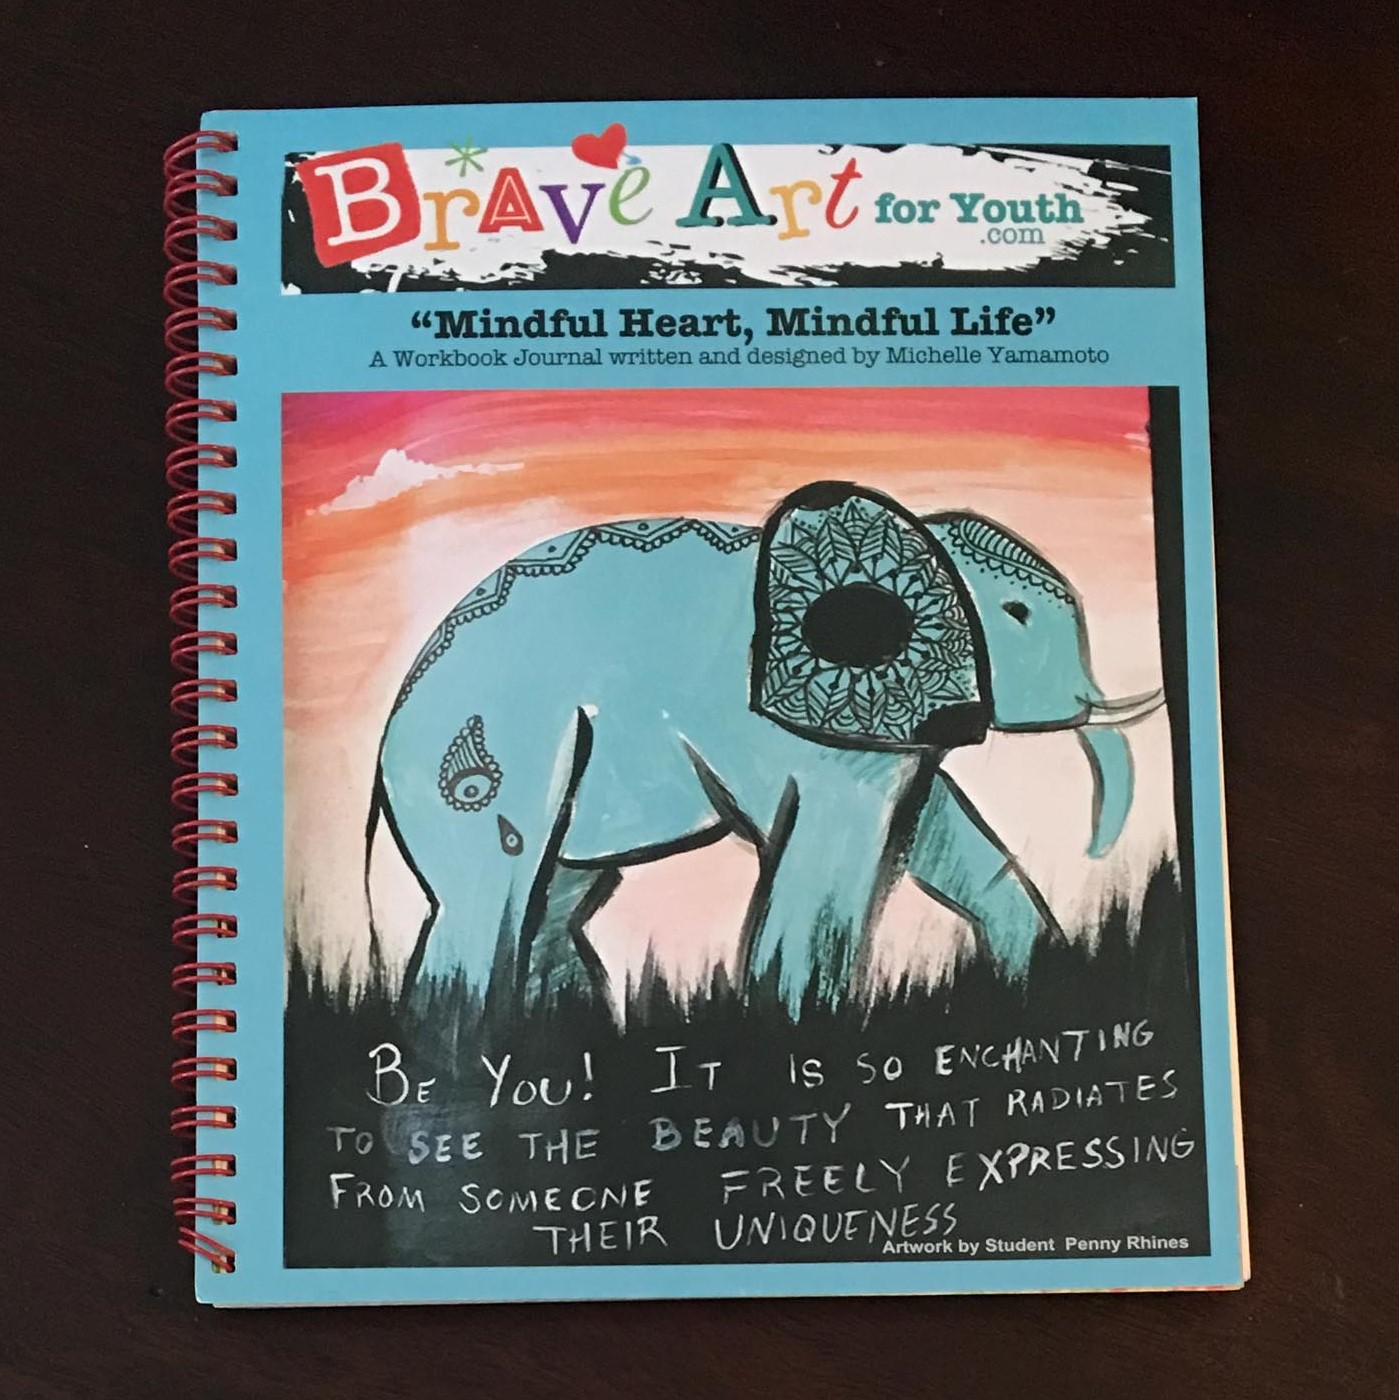 9a5084cdafa4 Workbook Journal - Brave Art For Youth